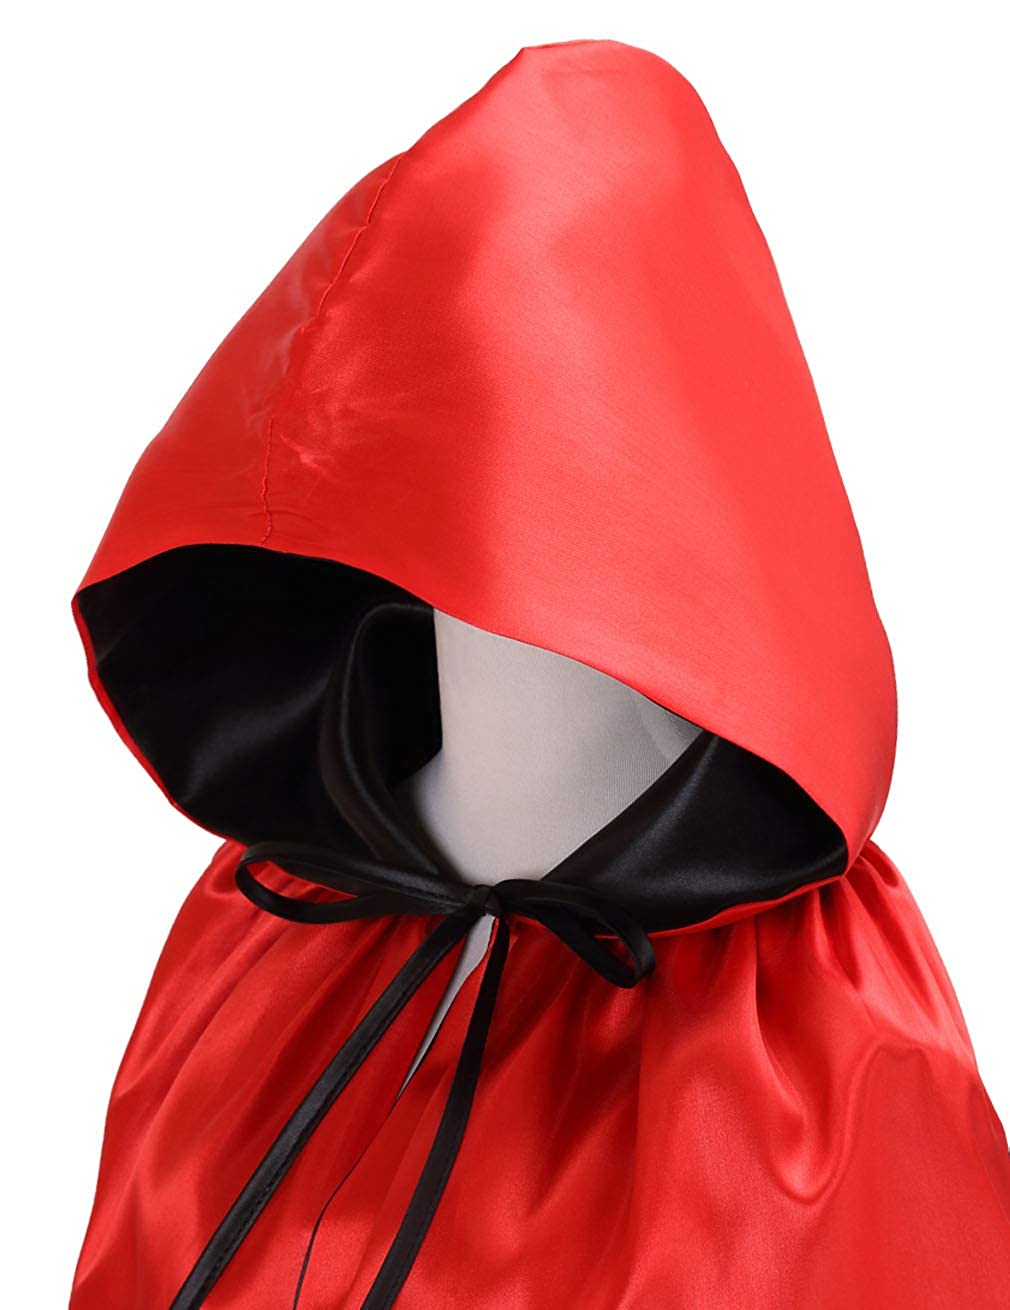 Hamour Unisex Reversible Hooded Cloak Halloween Christmas Party Wampire Cape Costumes